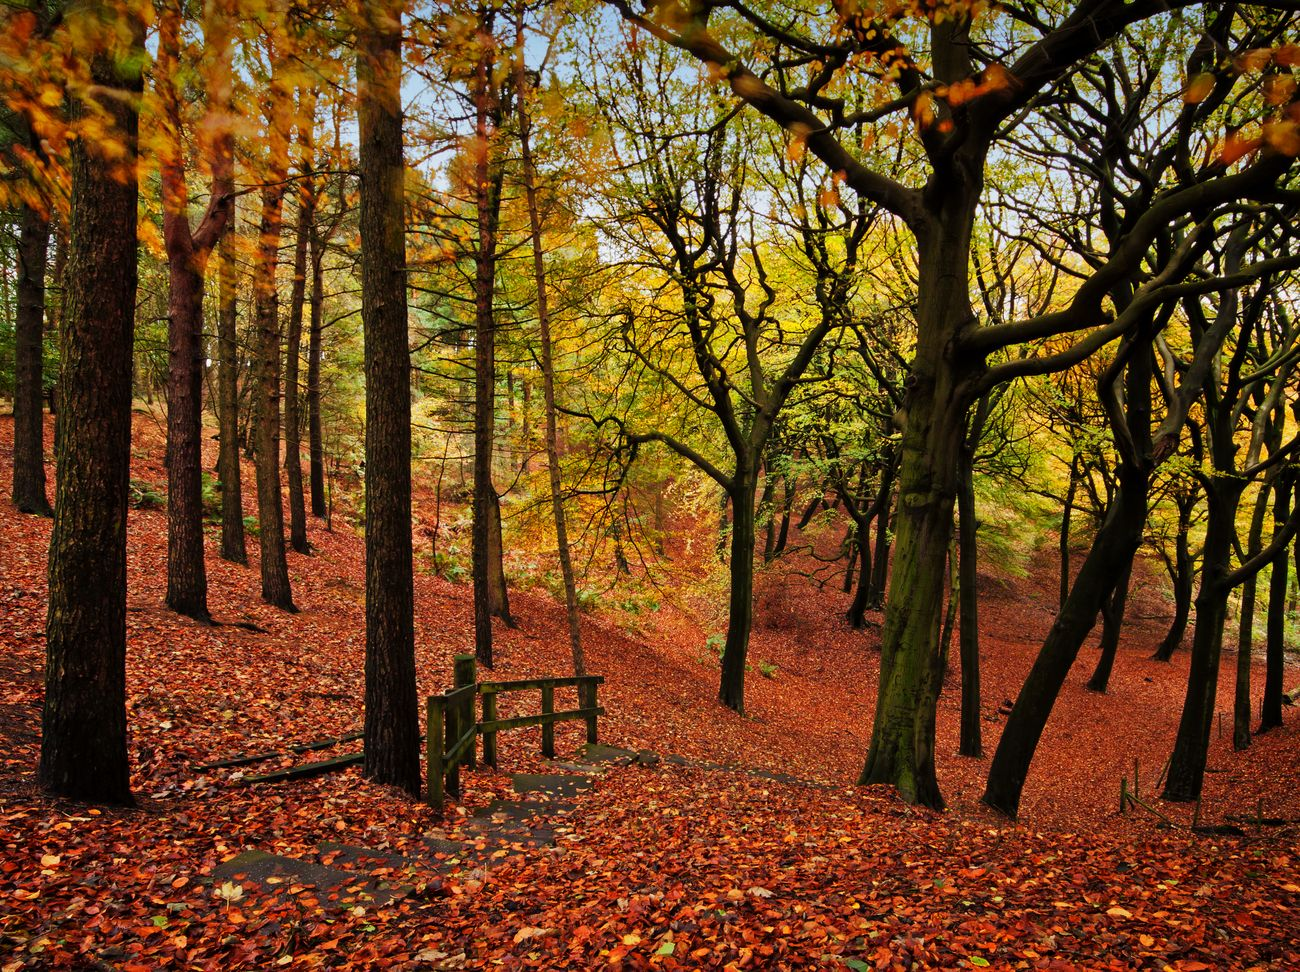 A woodland path covered in autumn leaves at Tandle Hills, Lancashire